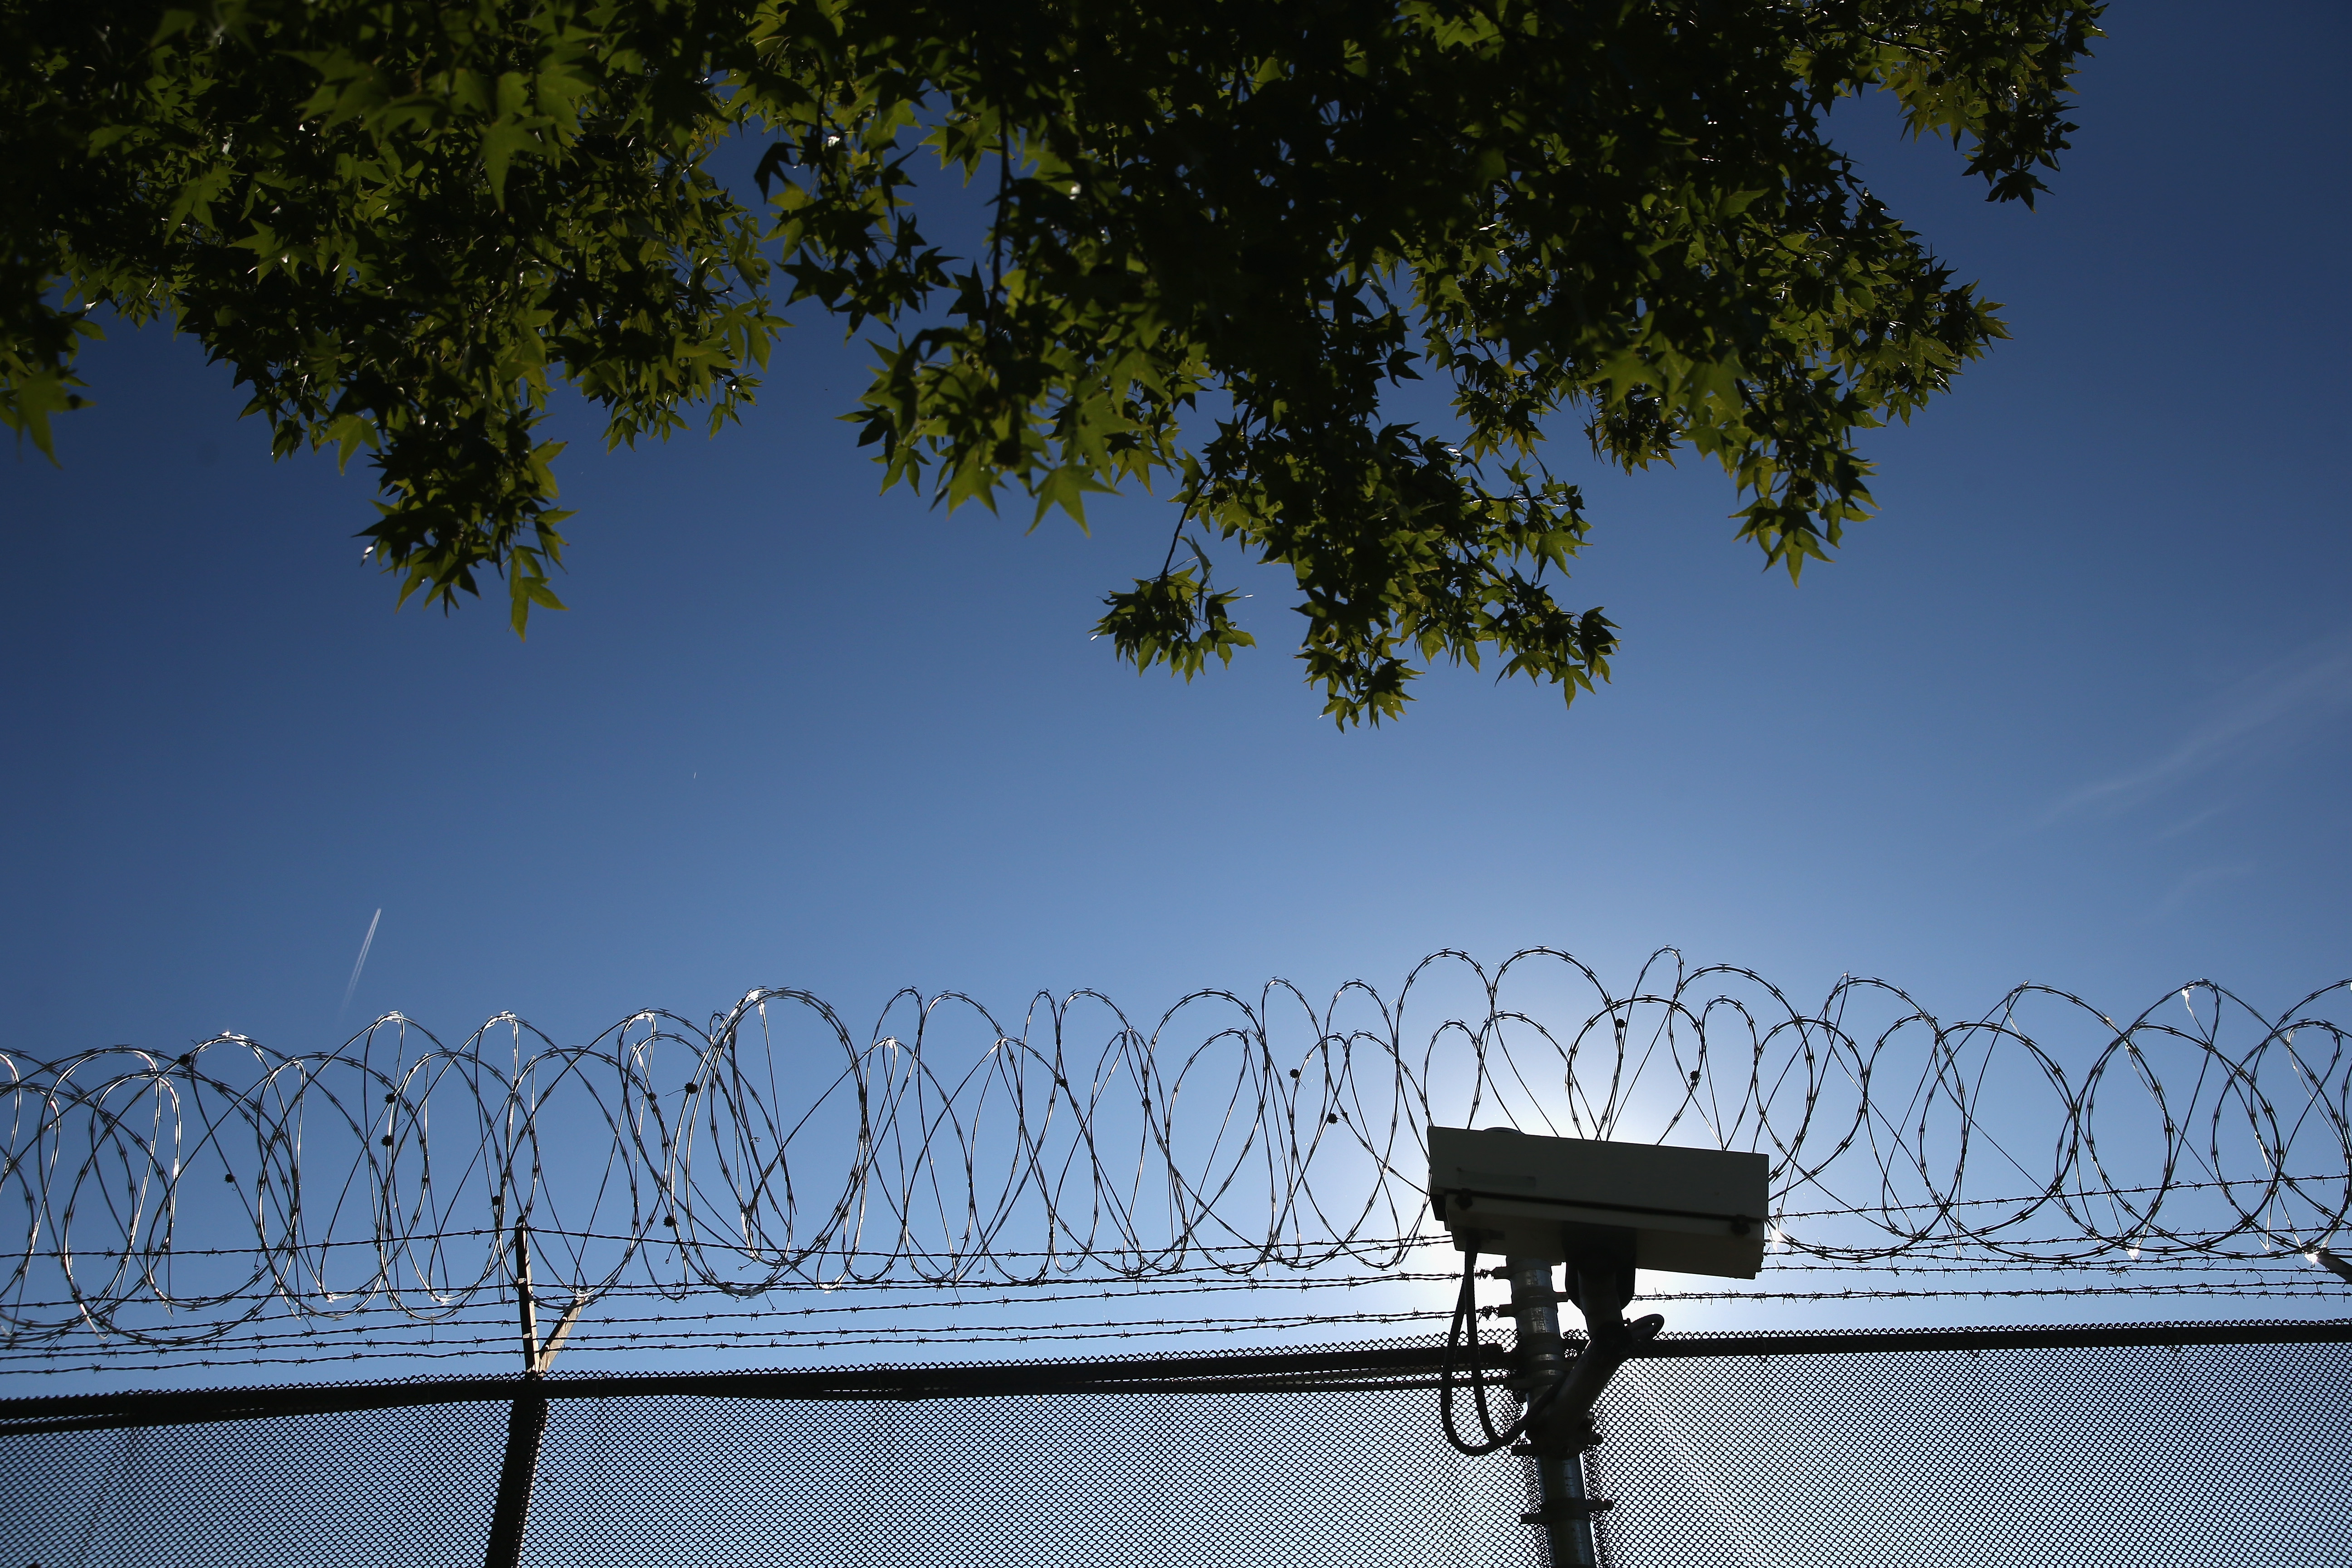 A fence topped with razor wire outside York County Detention Center in York, Pa.